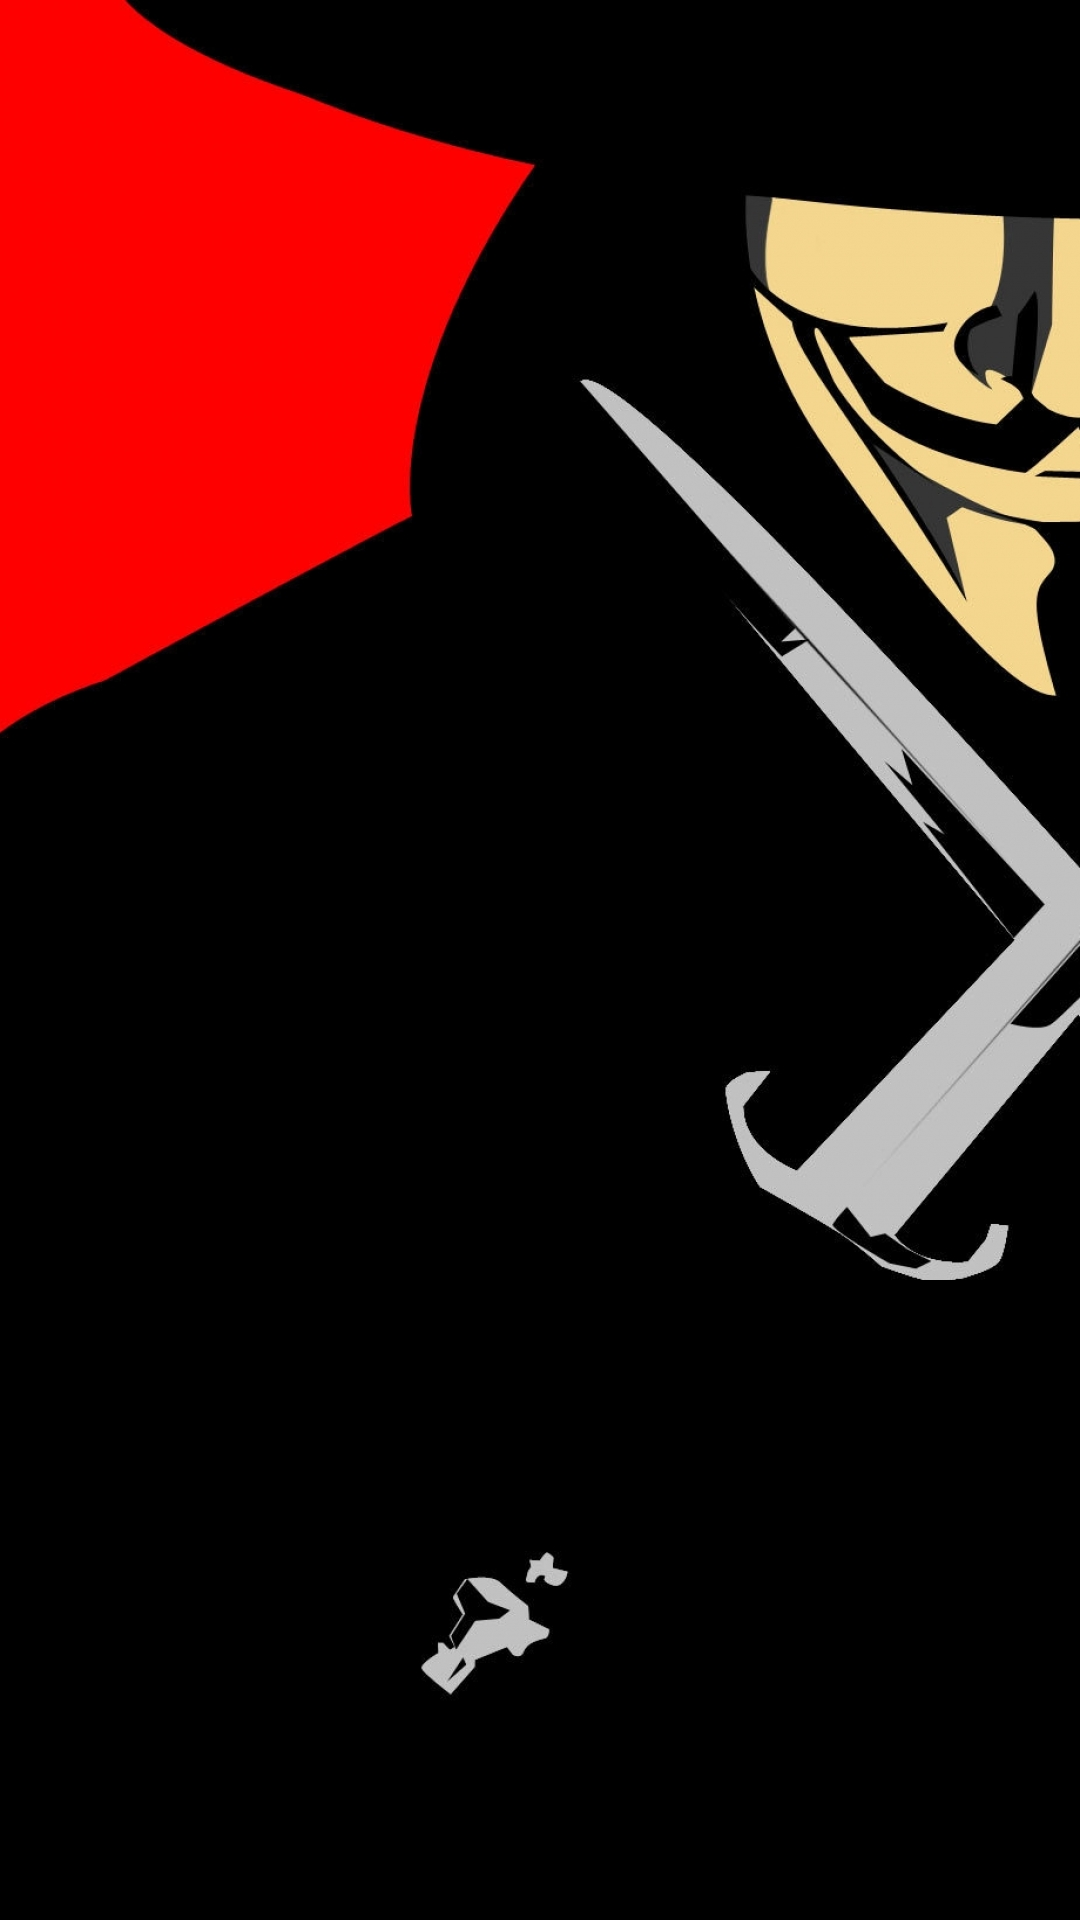 6 V For Vendetta Apple Iphone 6 750x1334 Wallpapers Mobile Abyss